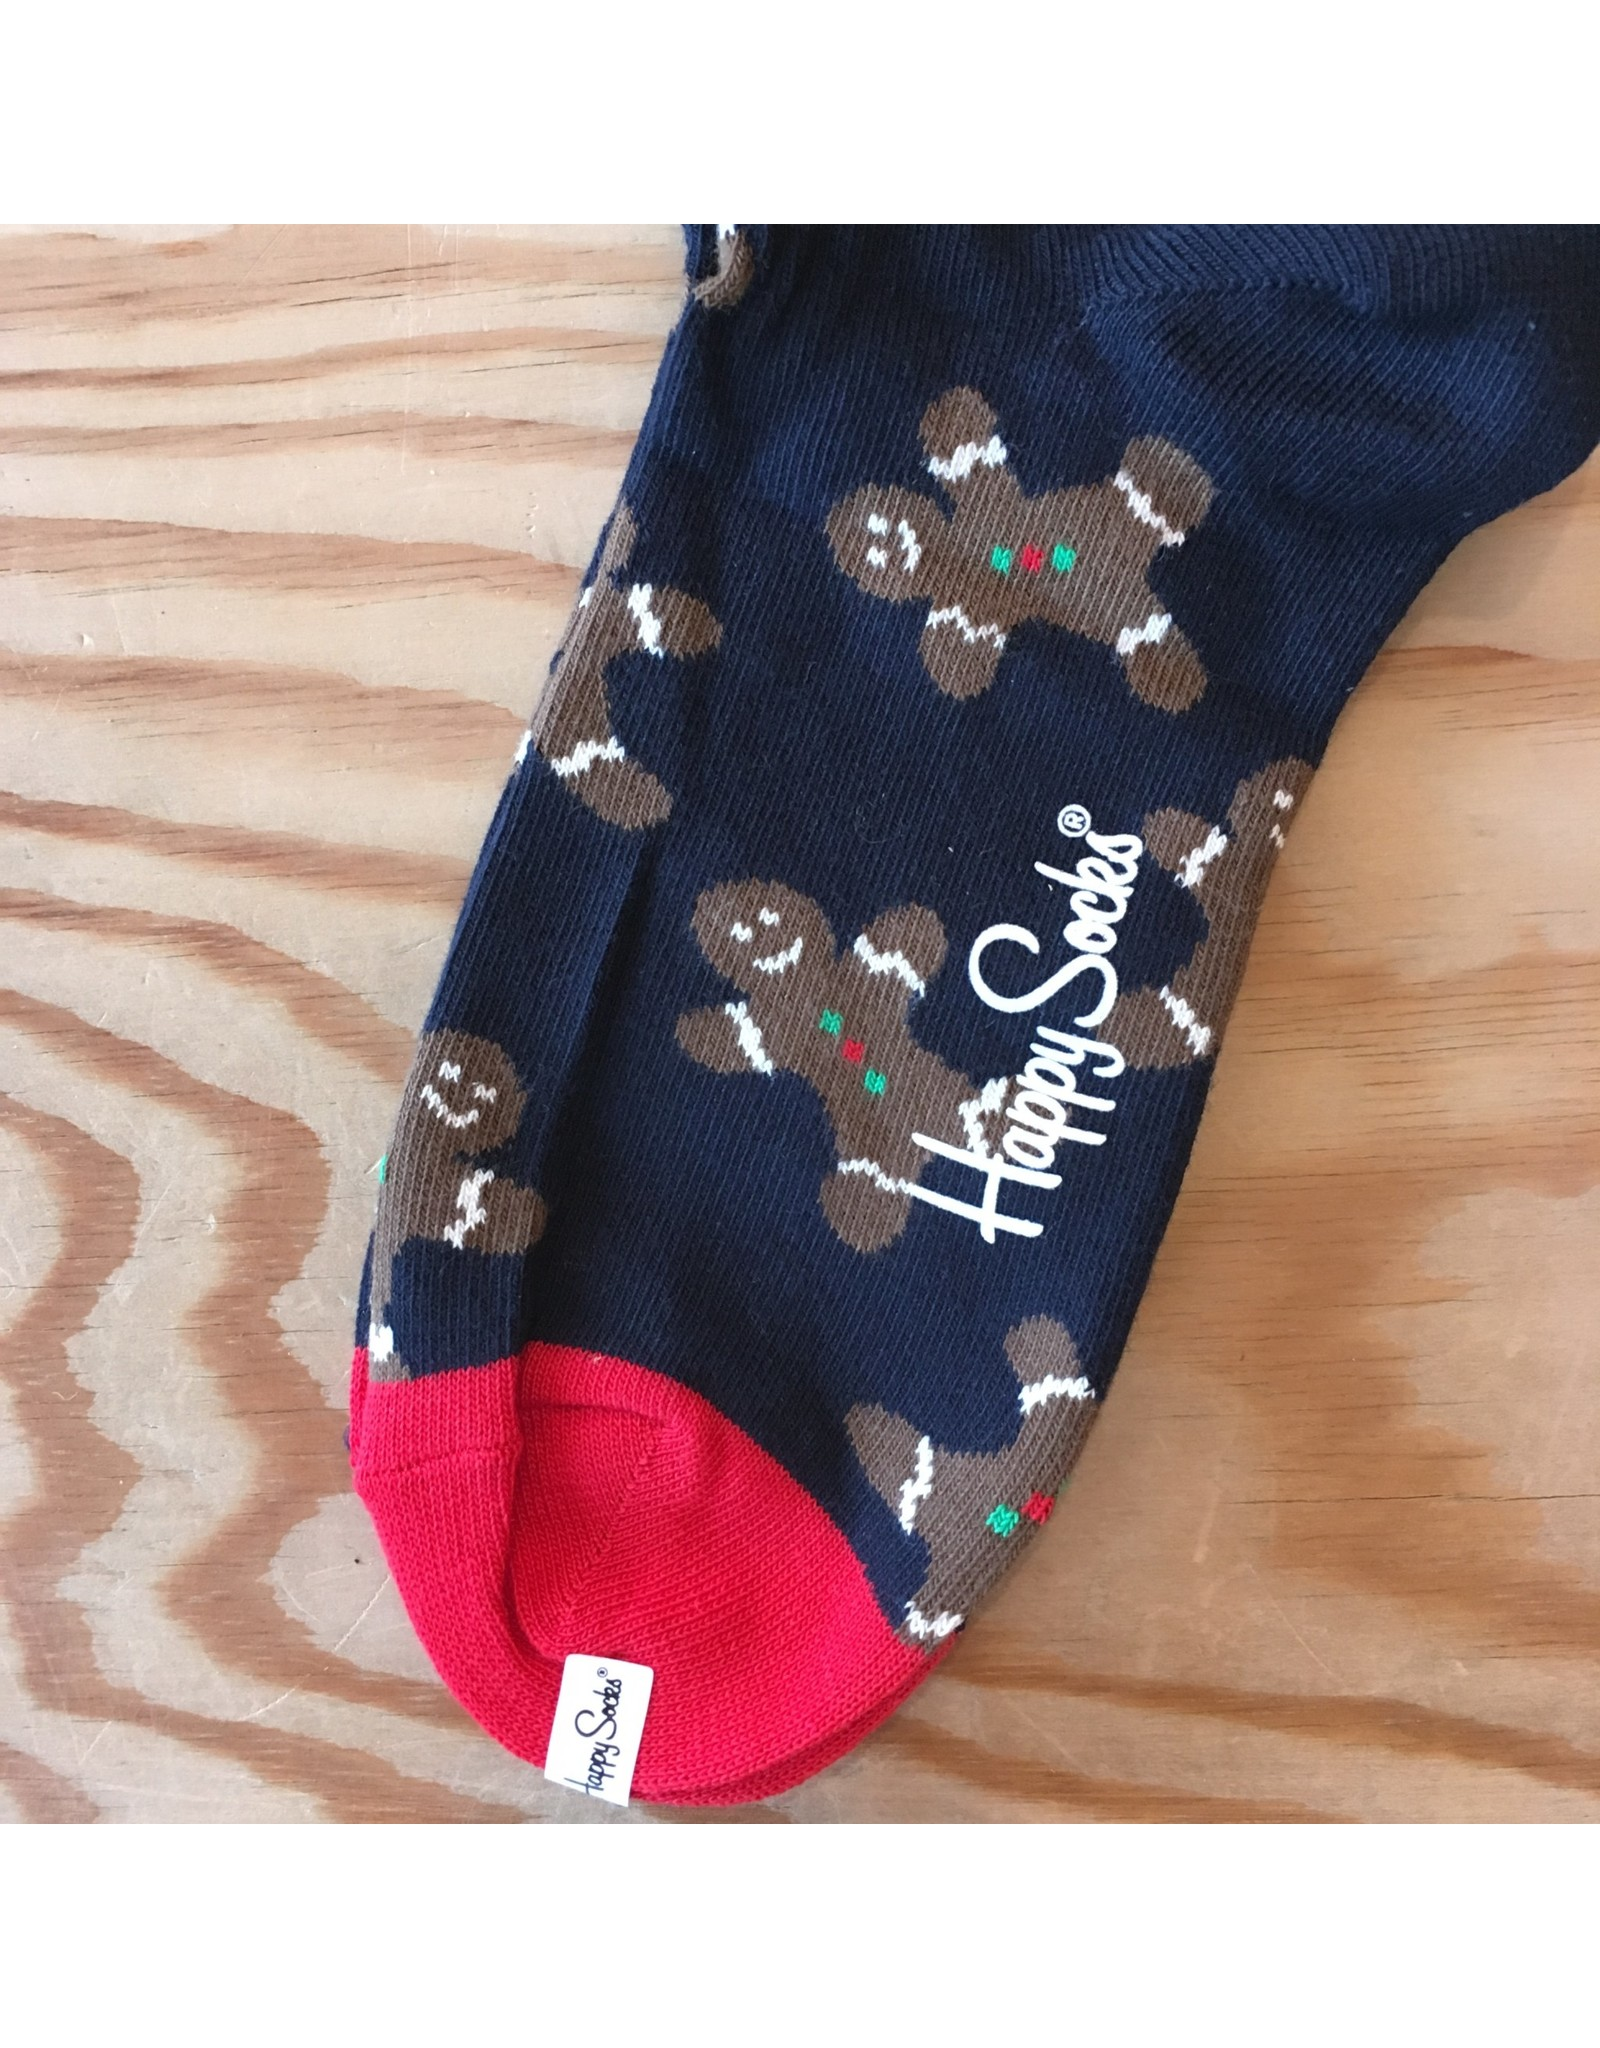 HAPPY SOCKS Copy of HAPPY SOCKS GIN01-6000 36-40